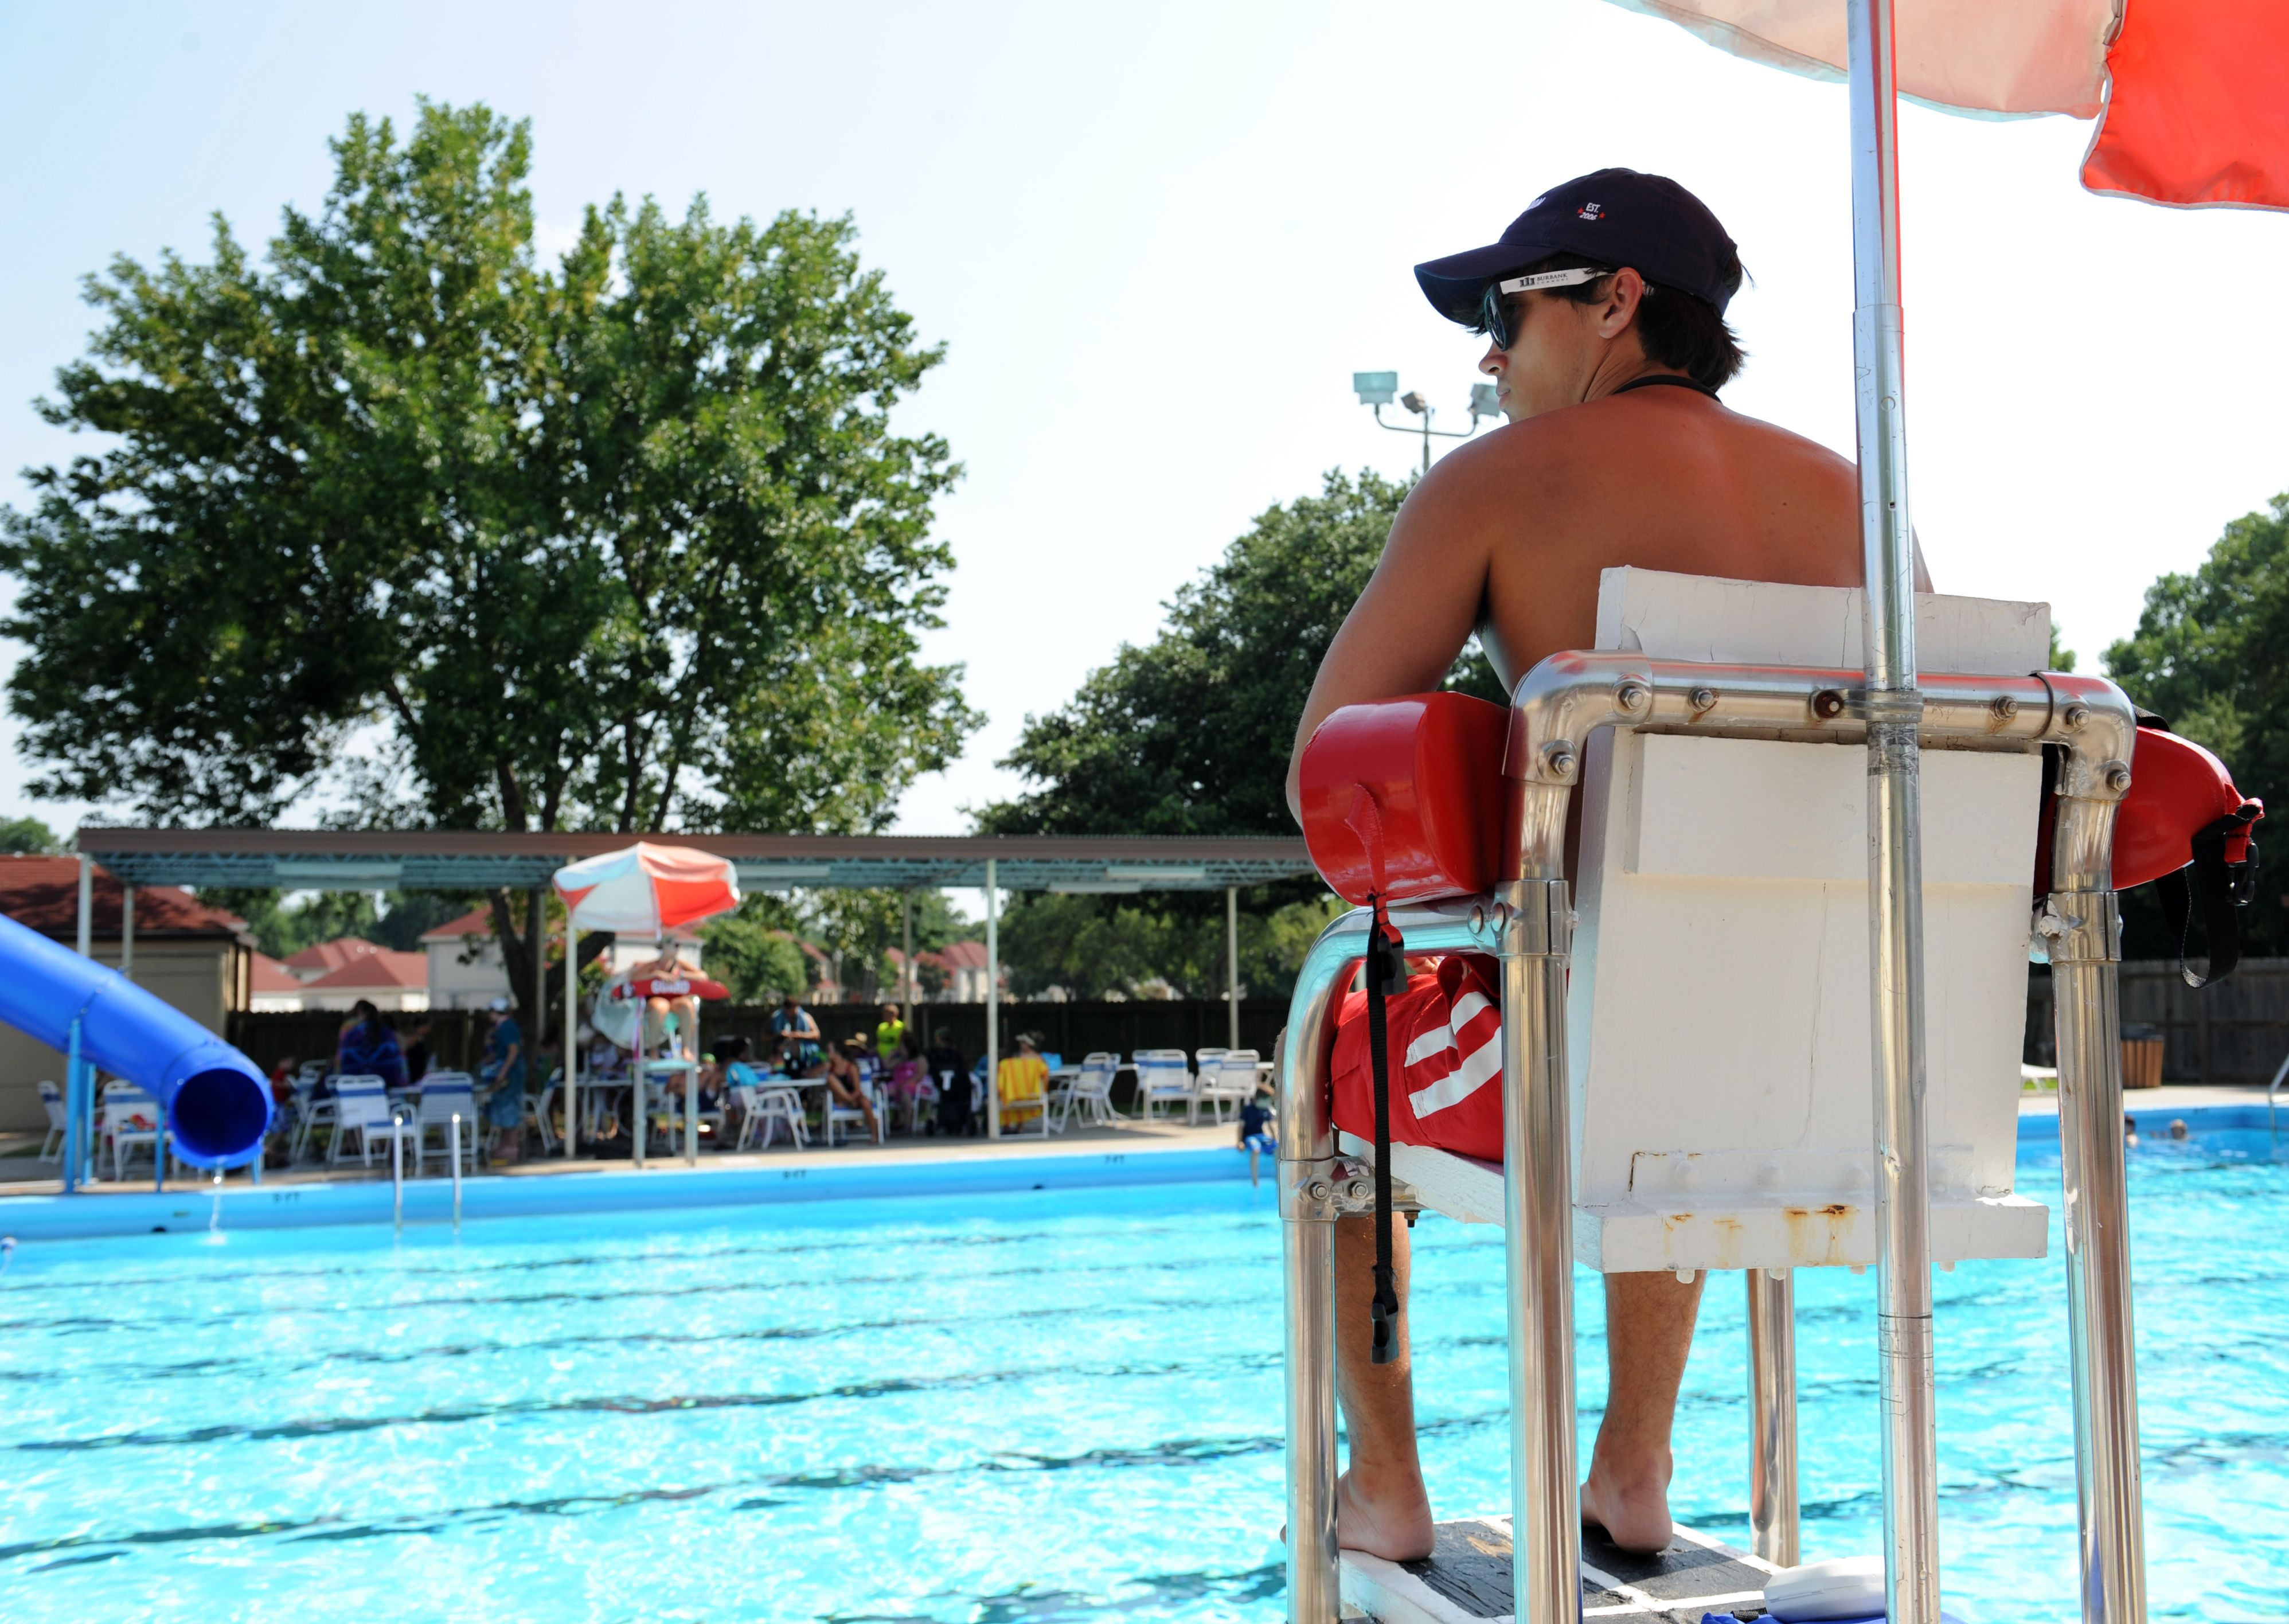 Saving Lives Barksdale Lifeguards Pool Maintenance Lifeguard Saving Lives